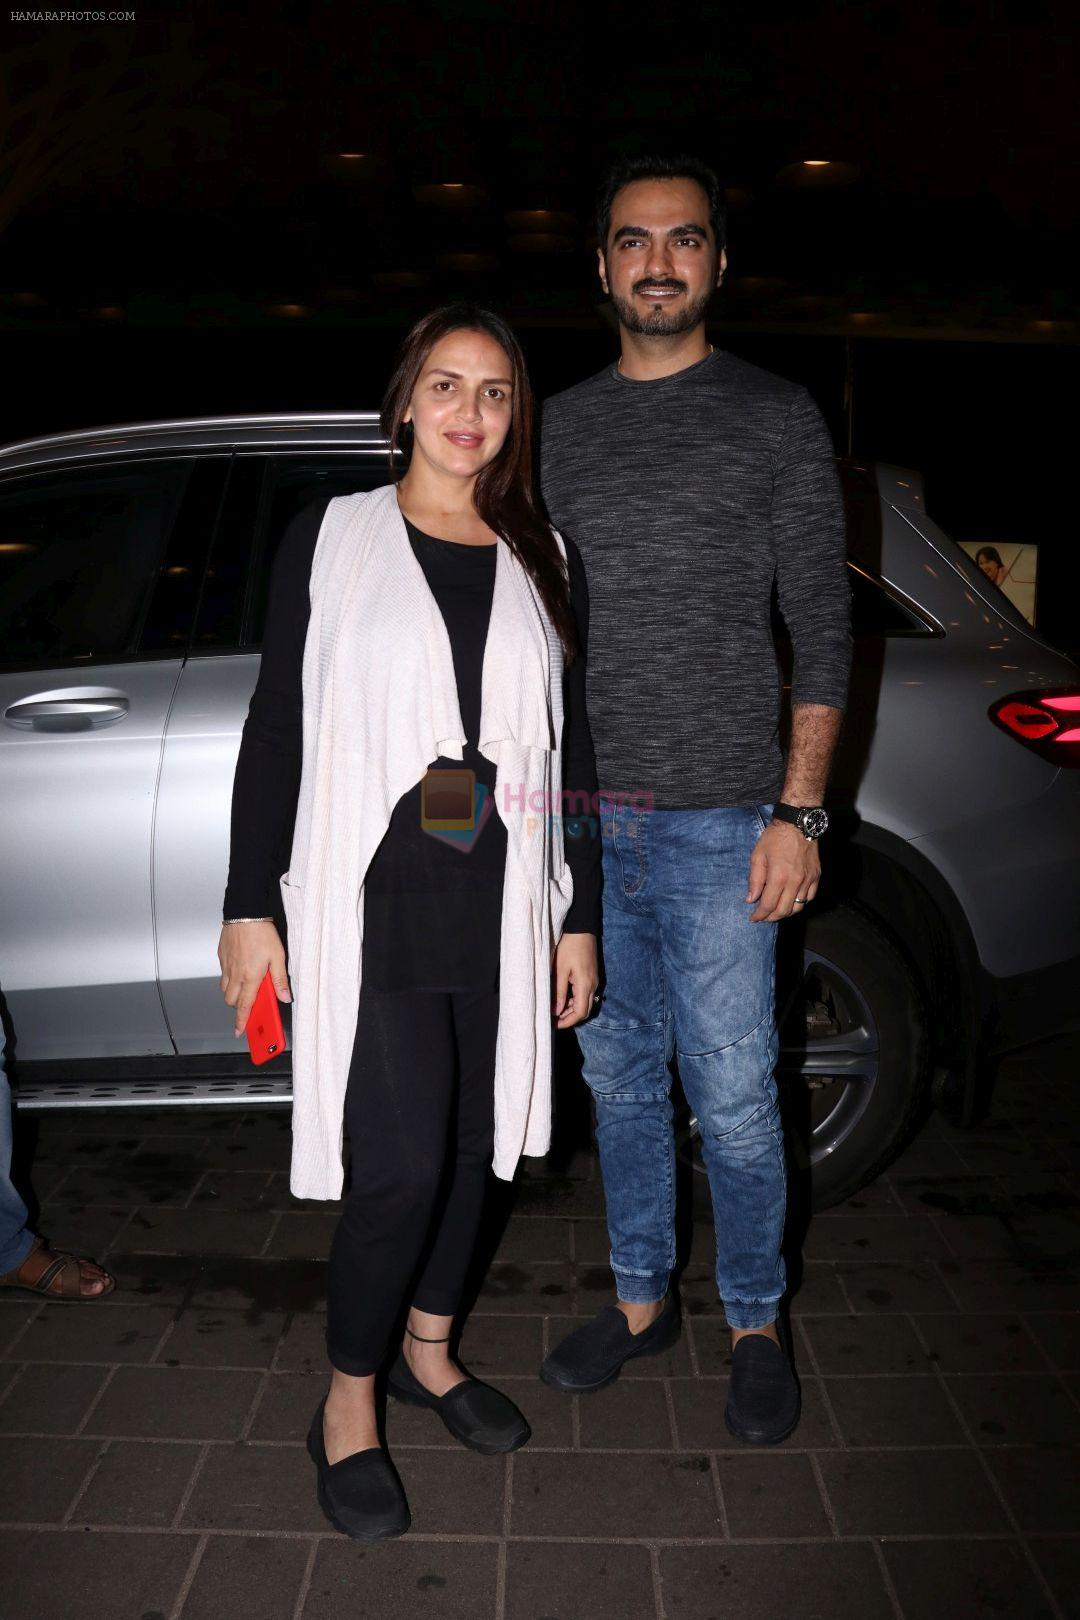 Esha Deol with her husband Bharat Takhtani at the airport during early hours of 15th June 2017